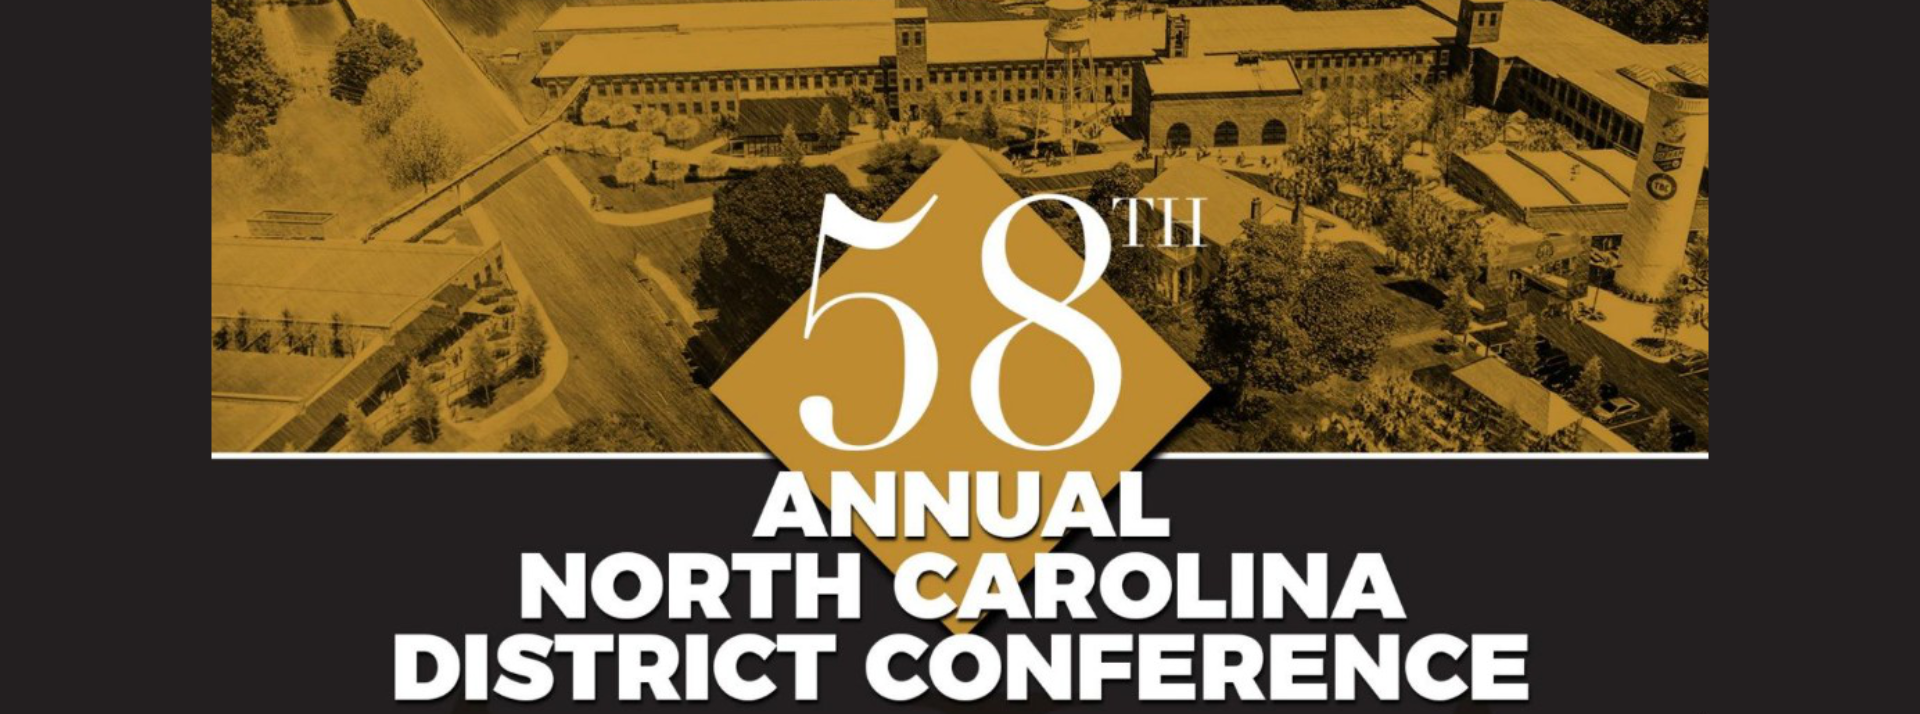 2019 ANCA District Conference